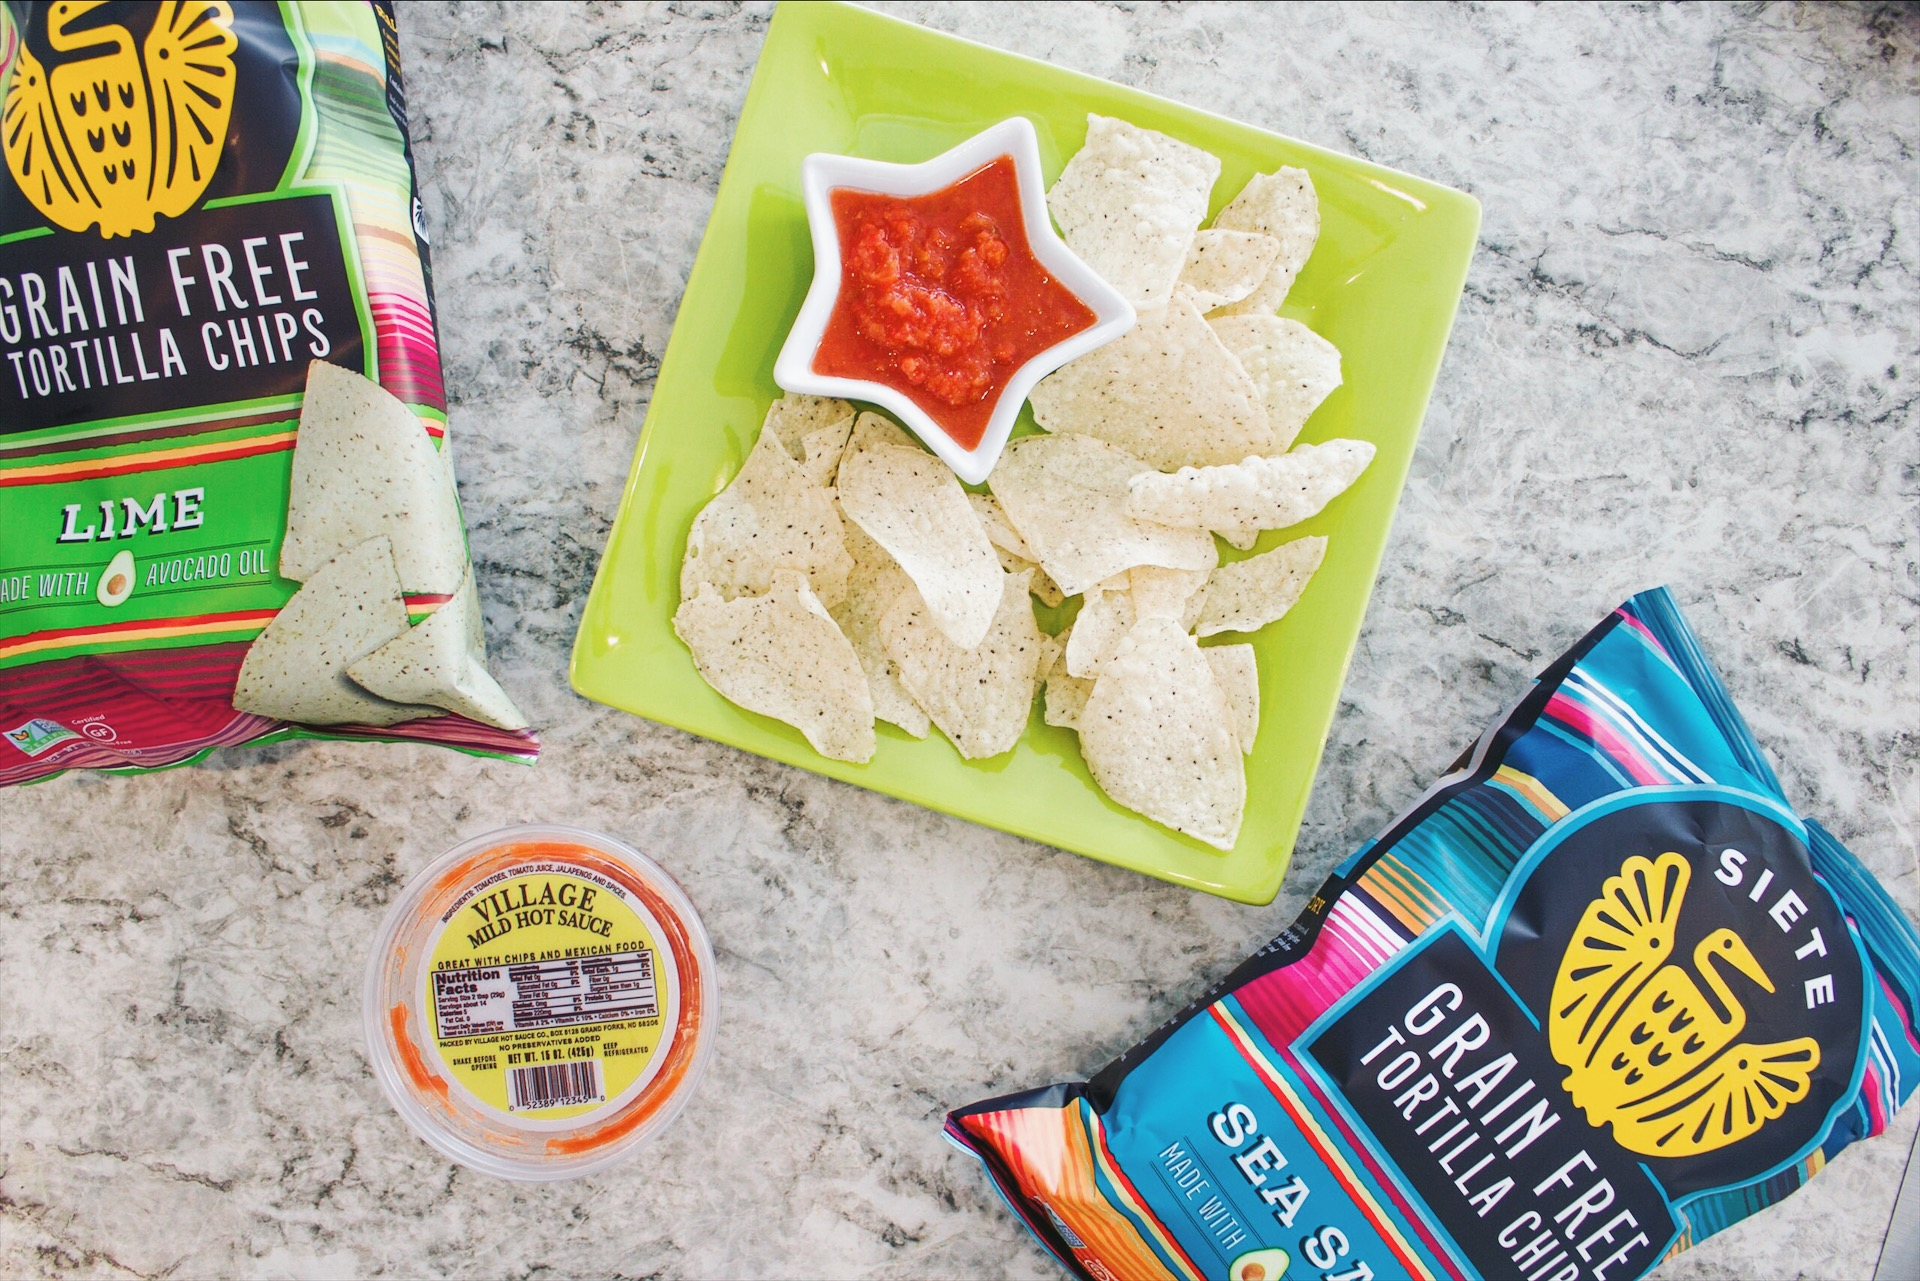 My favorite flavor is the classic Sea Salt, but they also have Lime and Nacho varieties too.